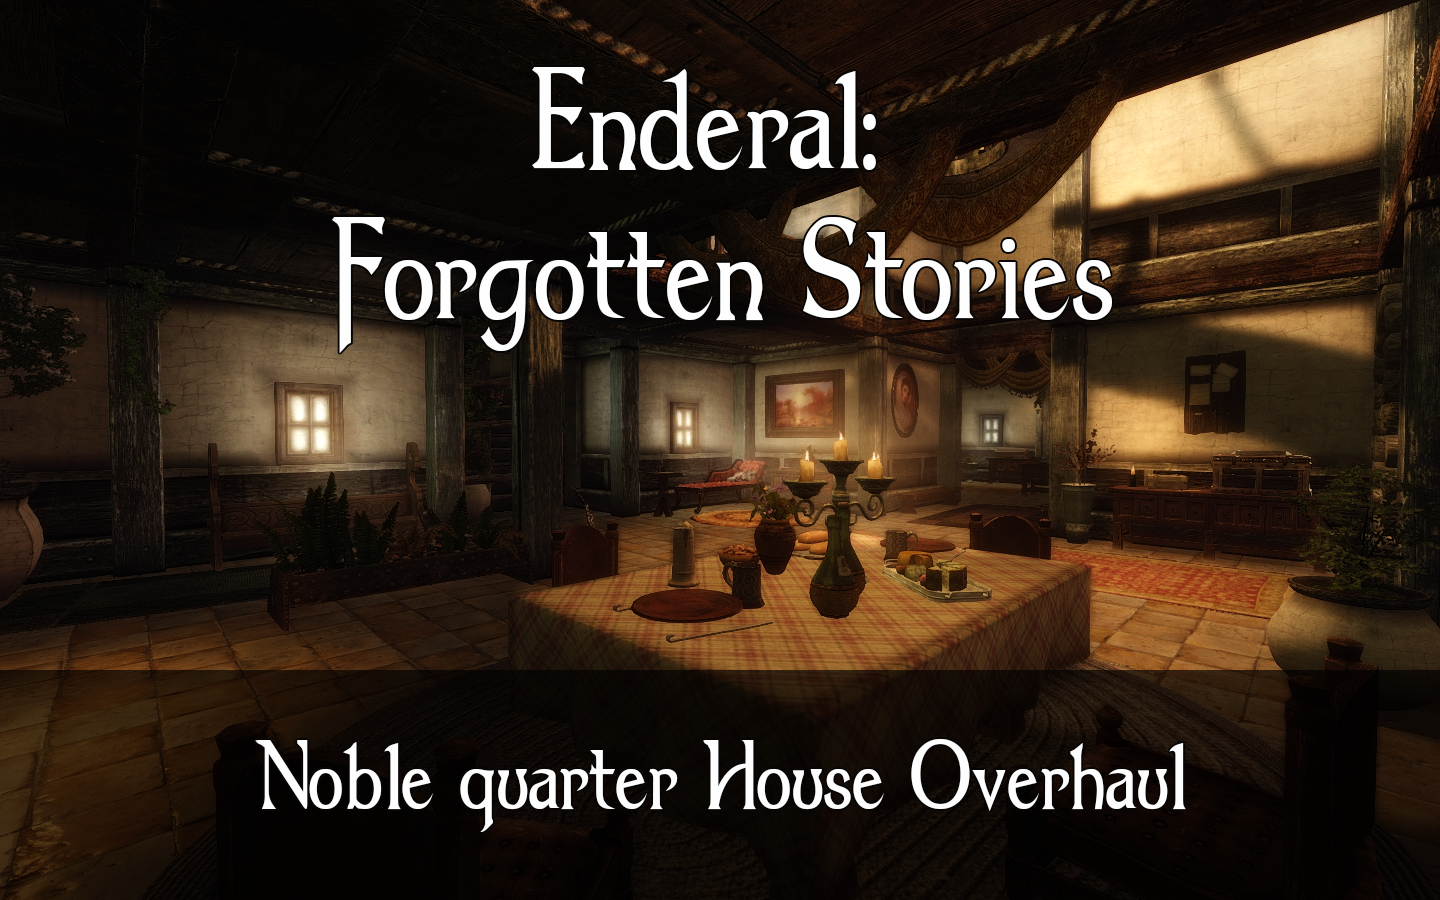 Мод Enderal - Nobles Quarter Player home redone для Enderal Forgotten Stories